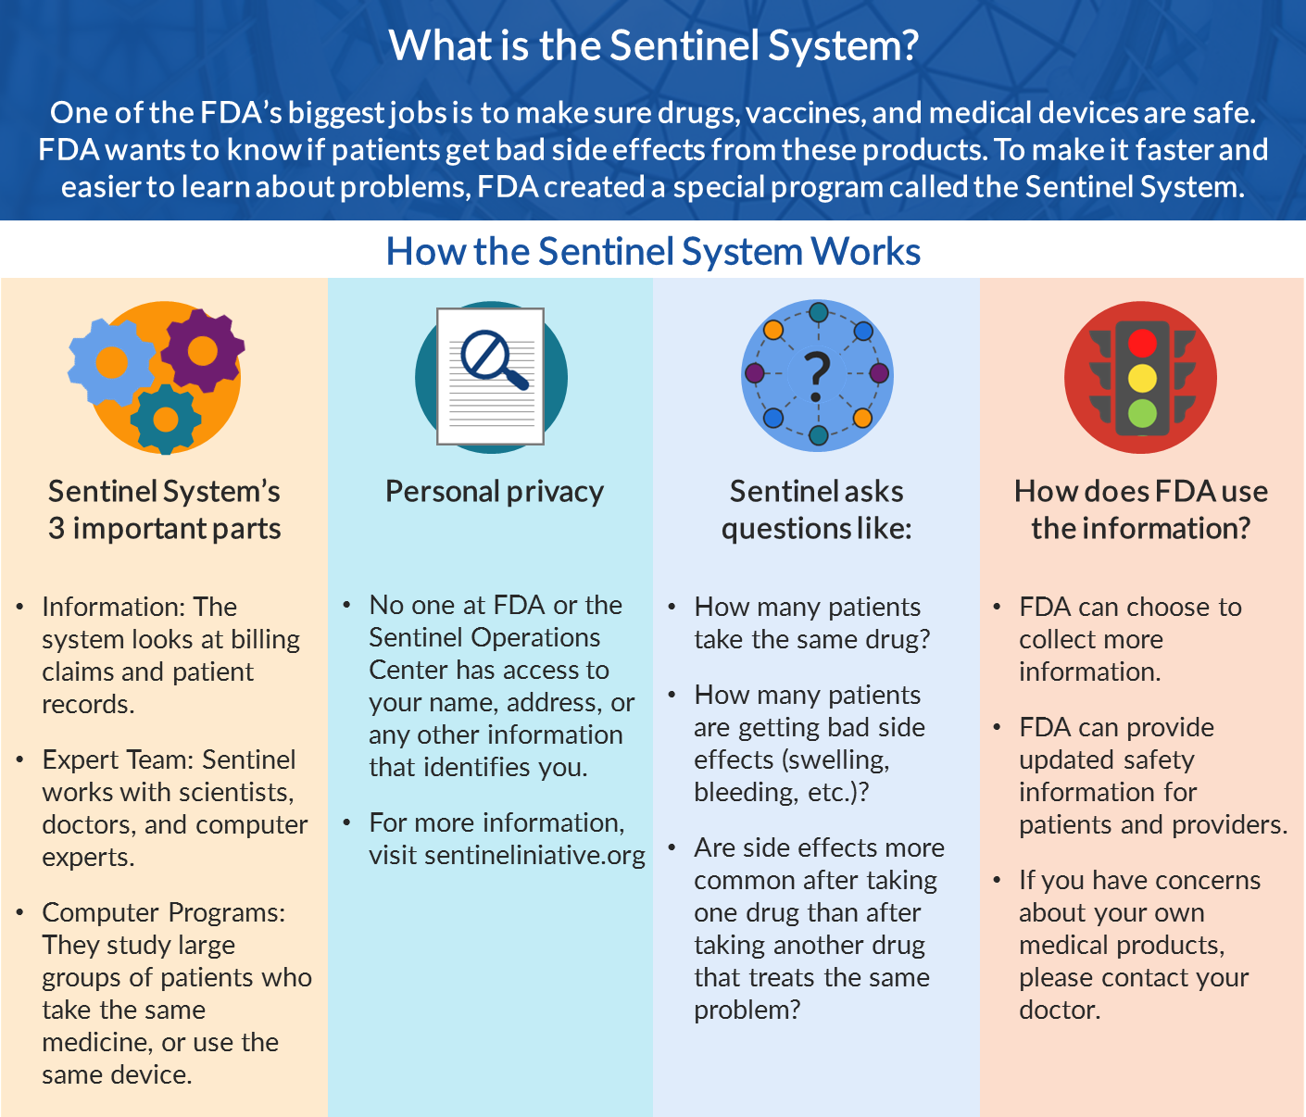 (1) Sentinel's System's 3 Important Parts, (2) Personal Privacy, (3) Sentinel asks questions like, (4) How does FDA use the information.